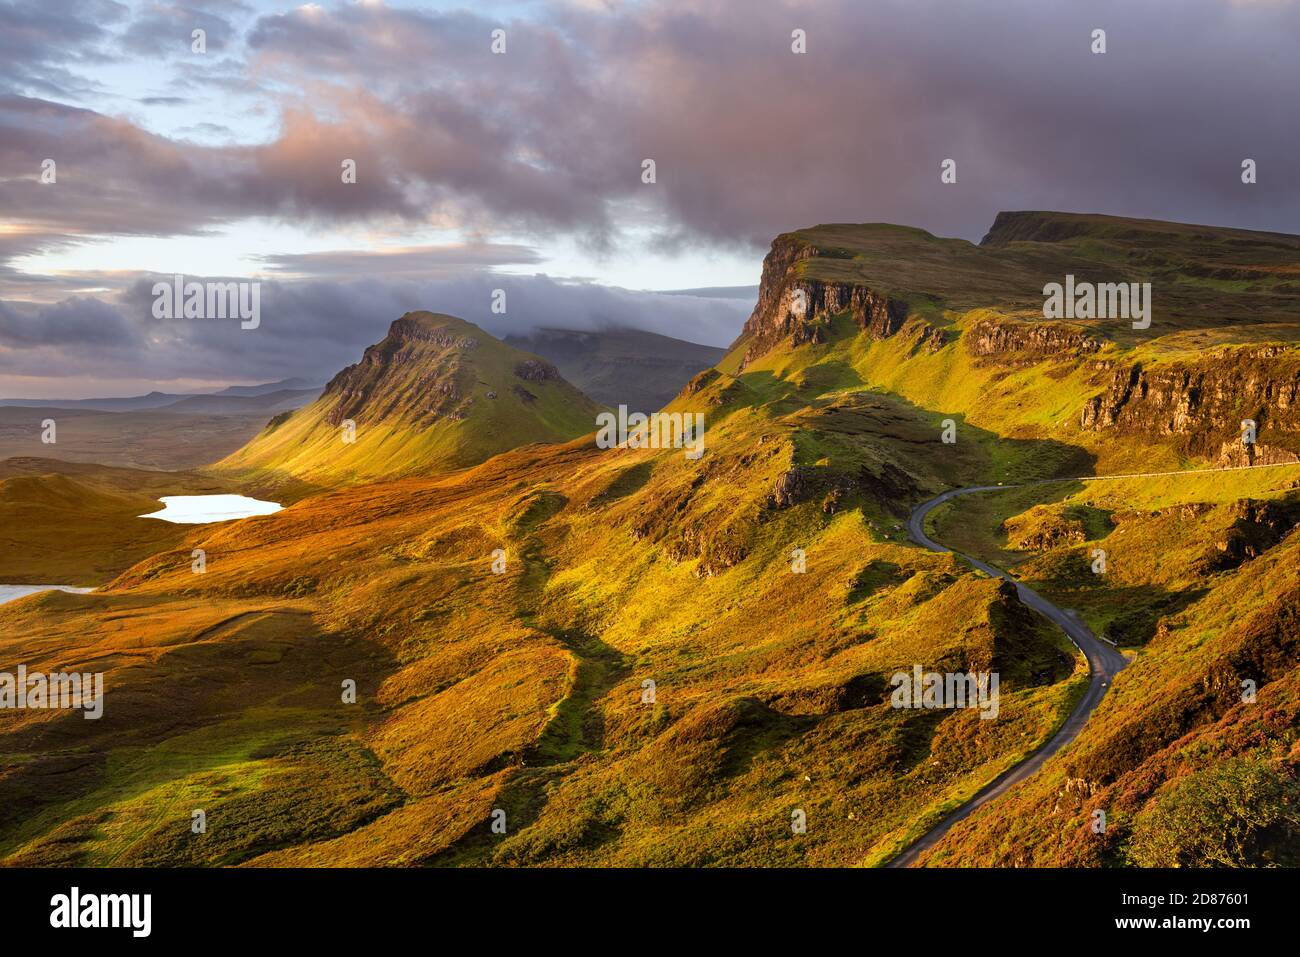 Morning light at The Quiraing on the beautiful Scottish Isle of Skye with winding road. Stock Photo